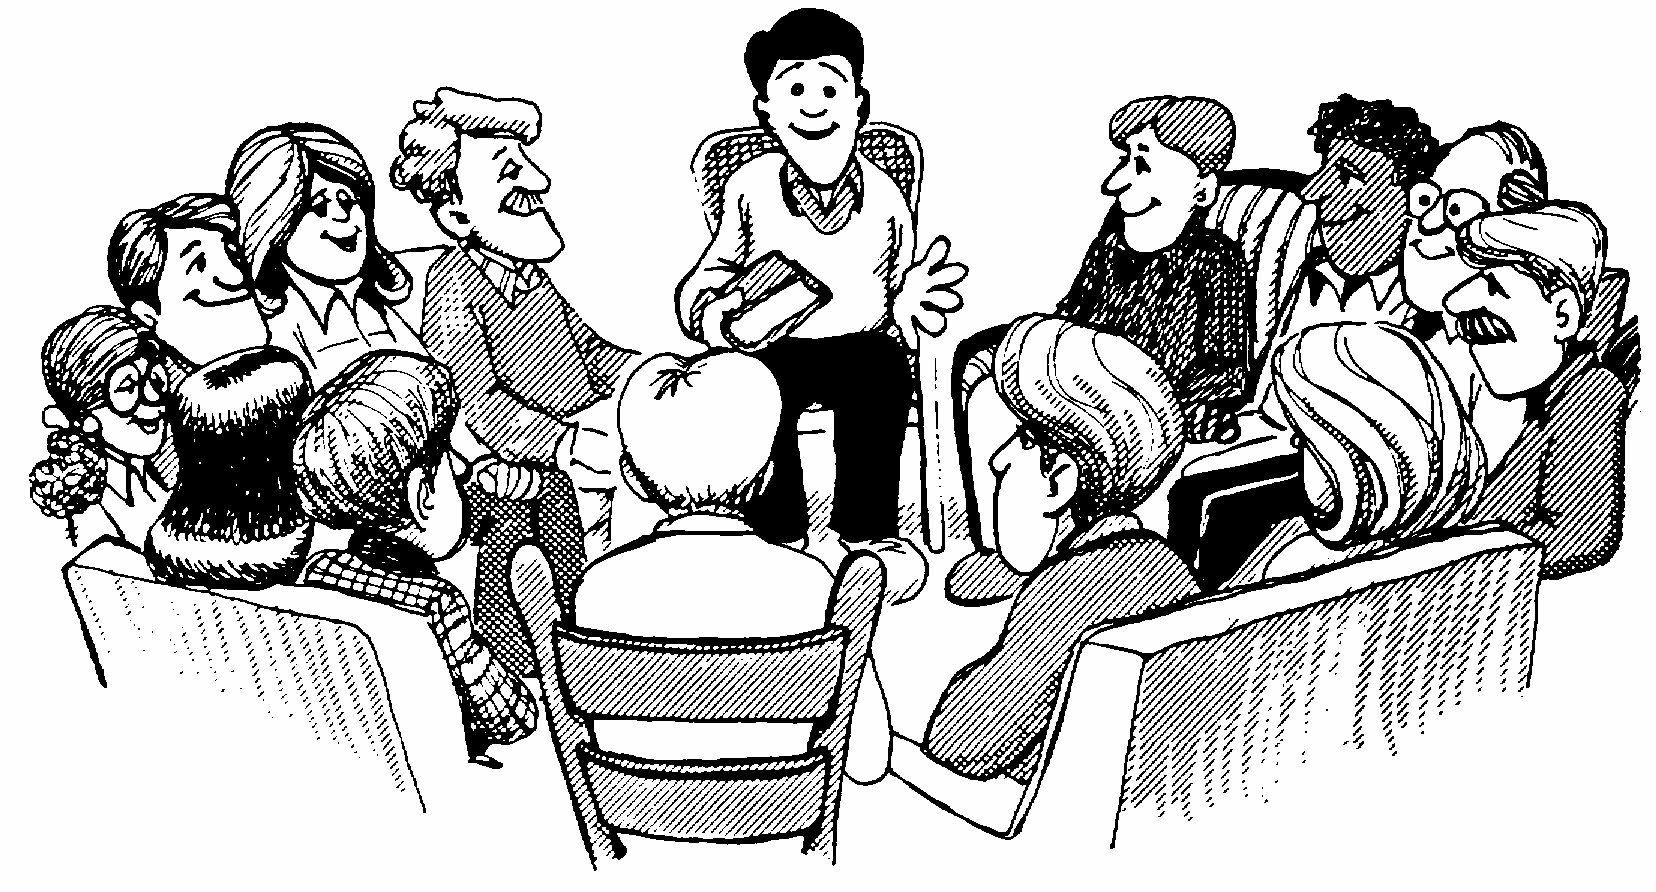 Study Group Clipart - Clipart Kid